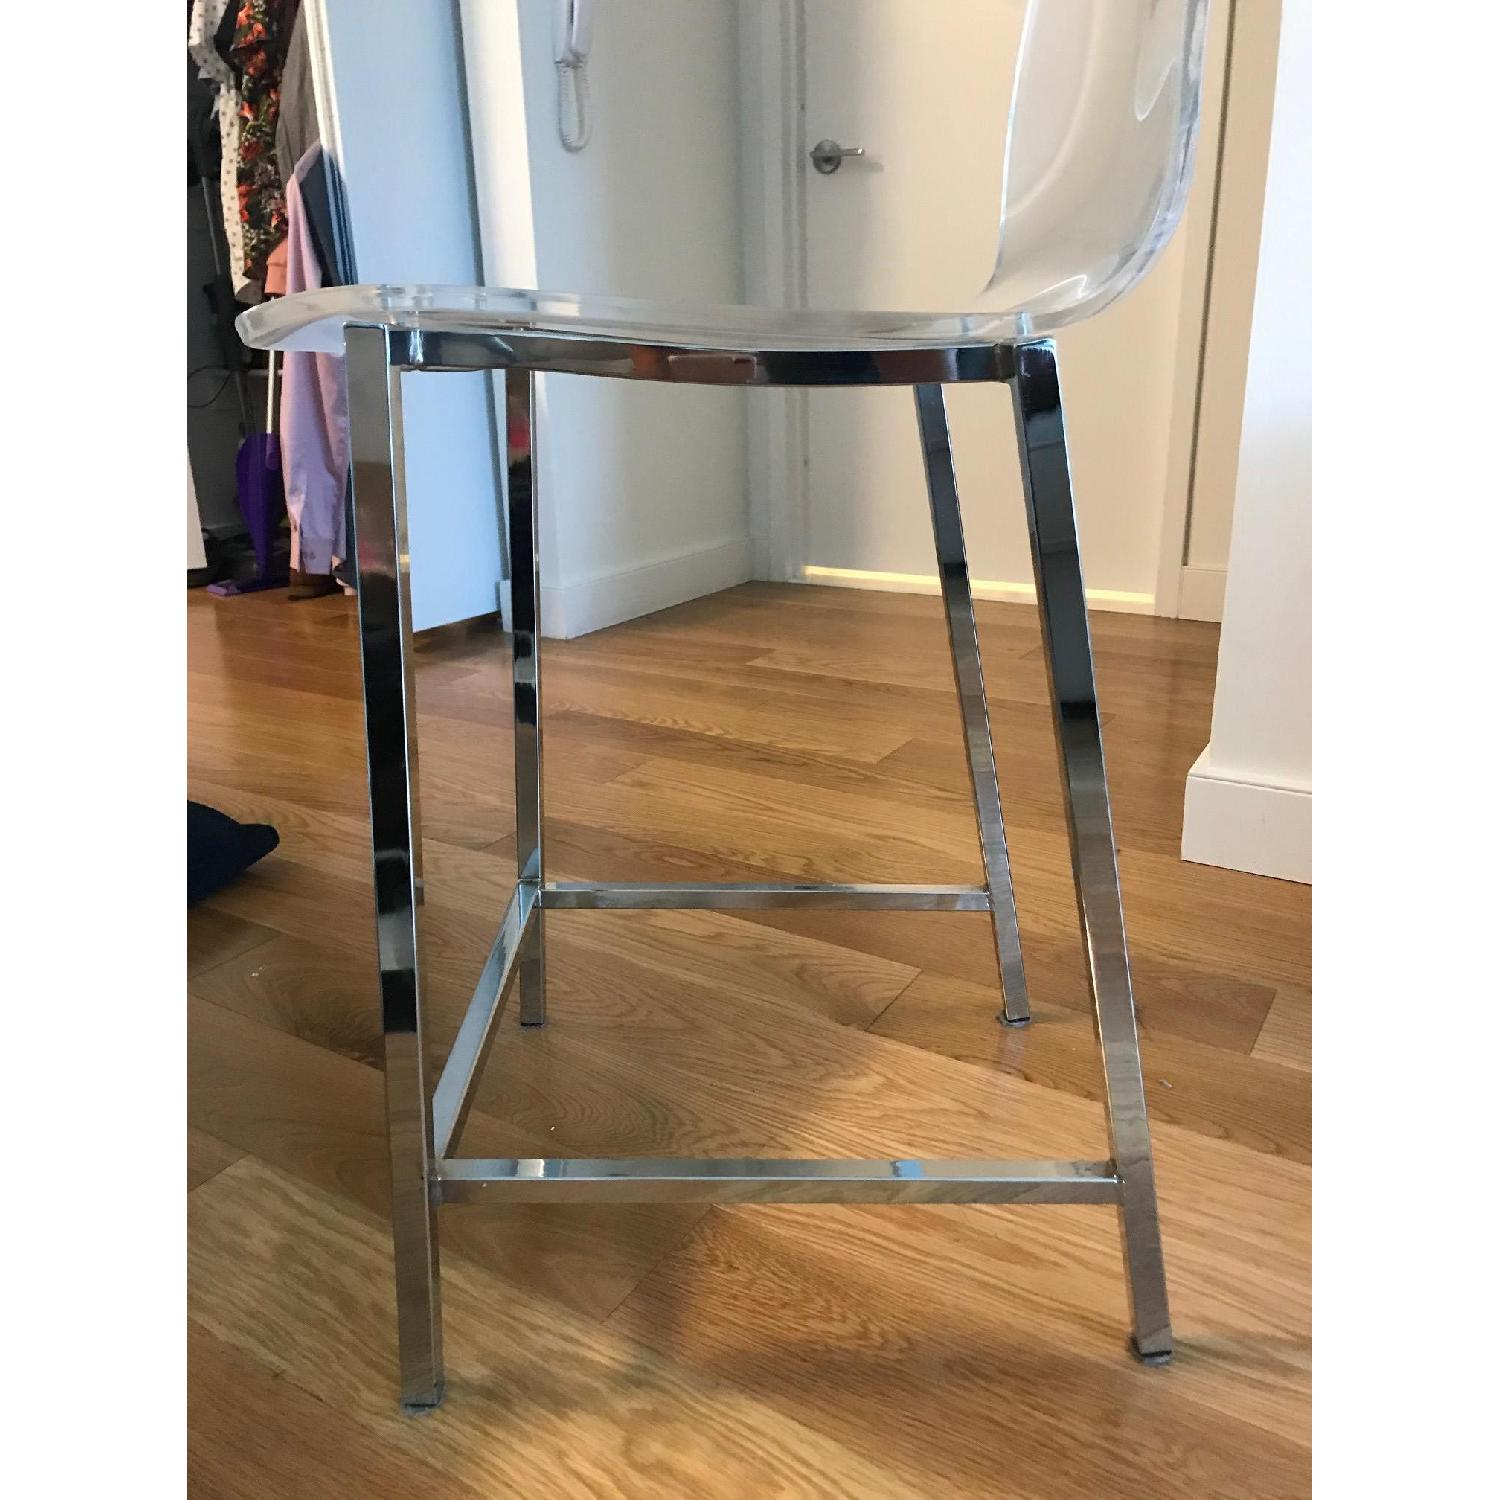 CB2 Clear Barstools in Nickel Finish - image-6